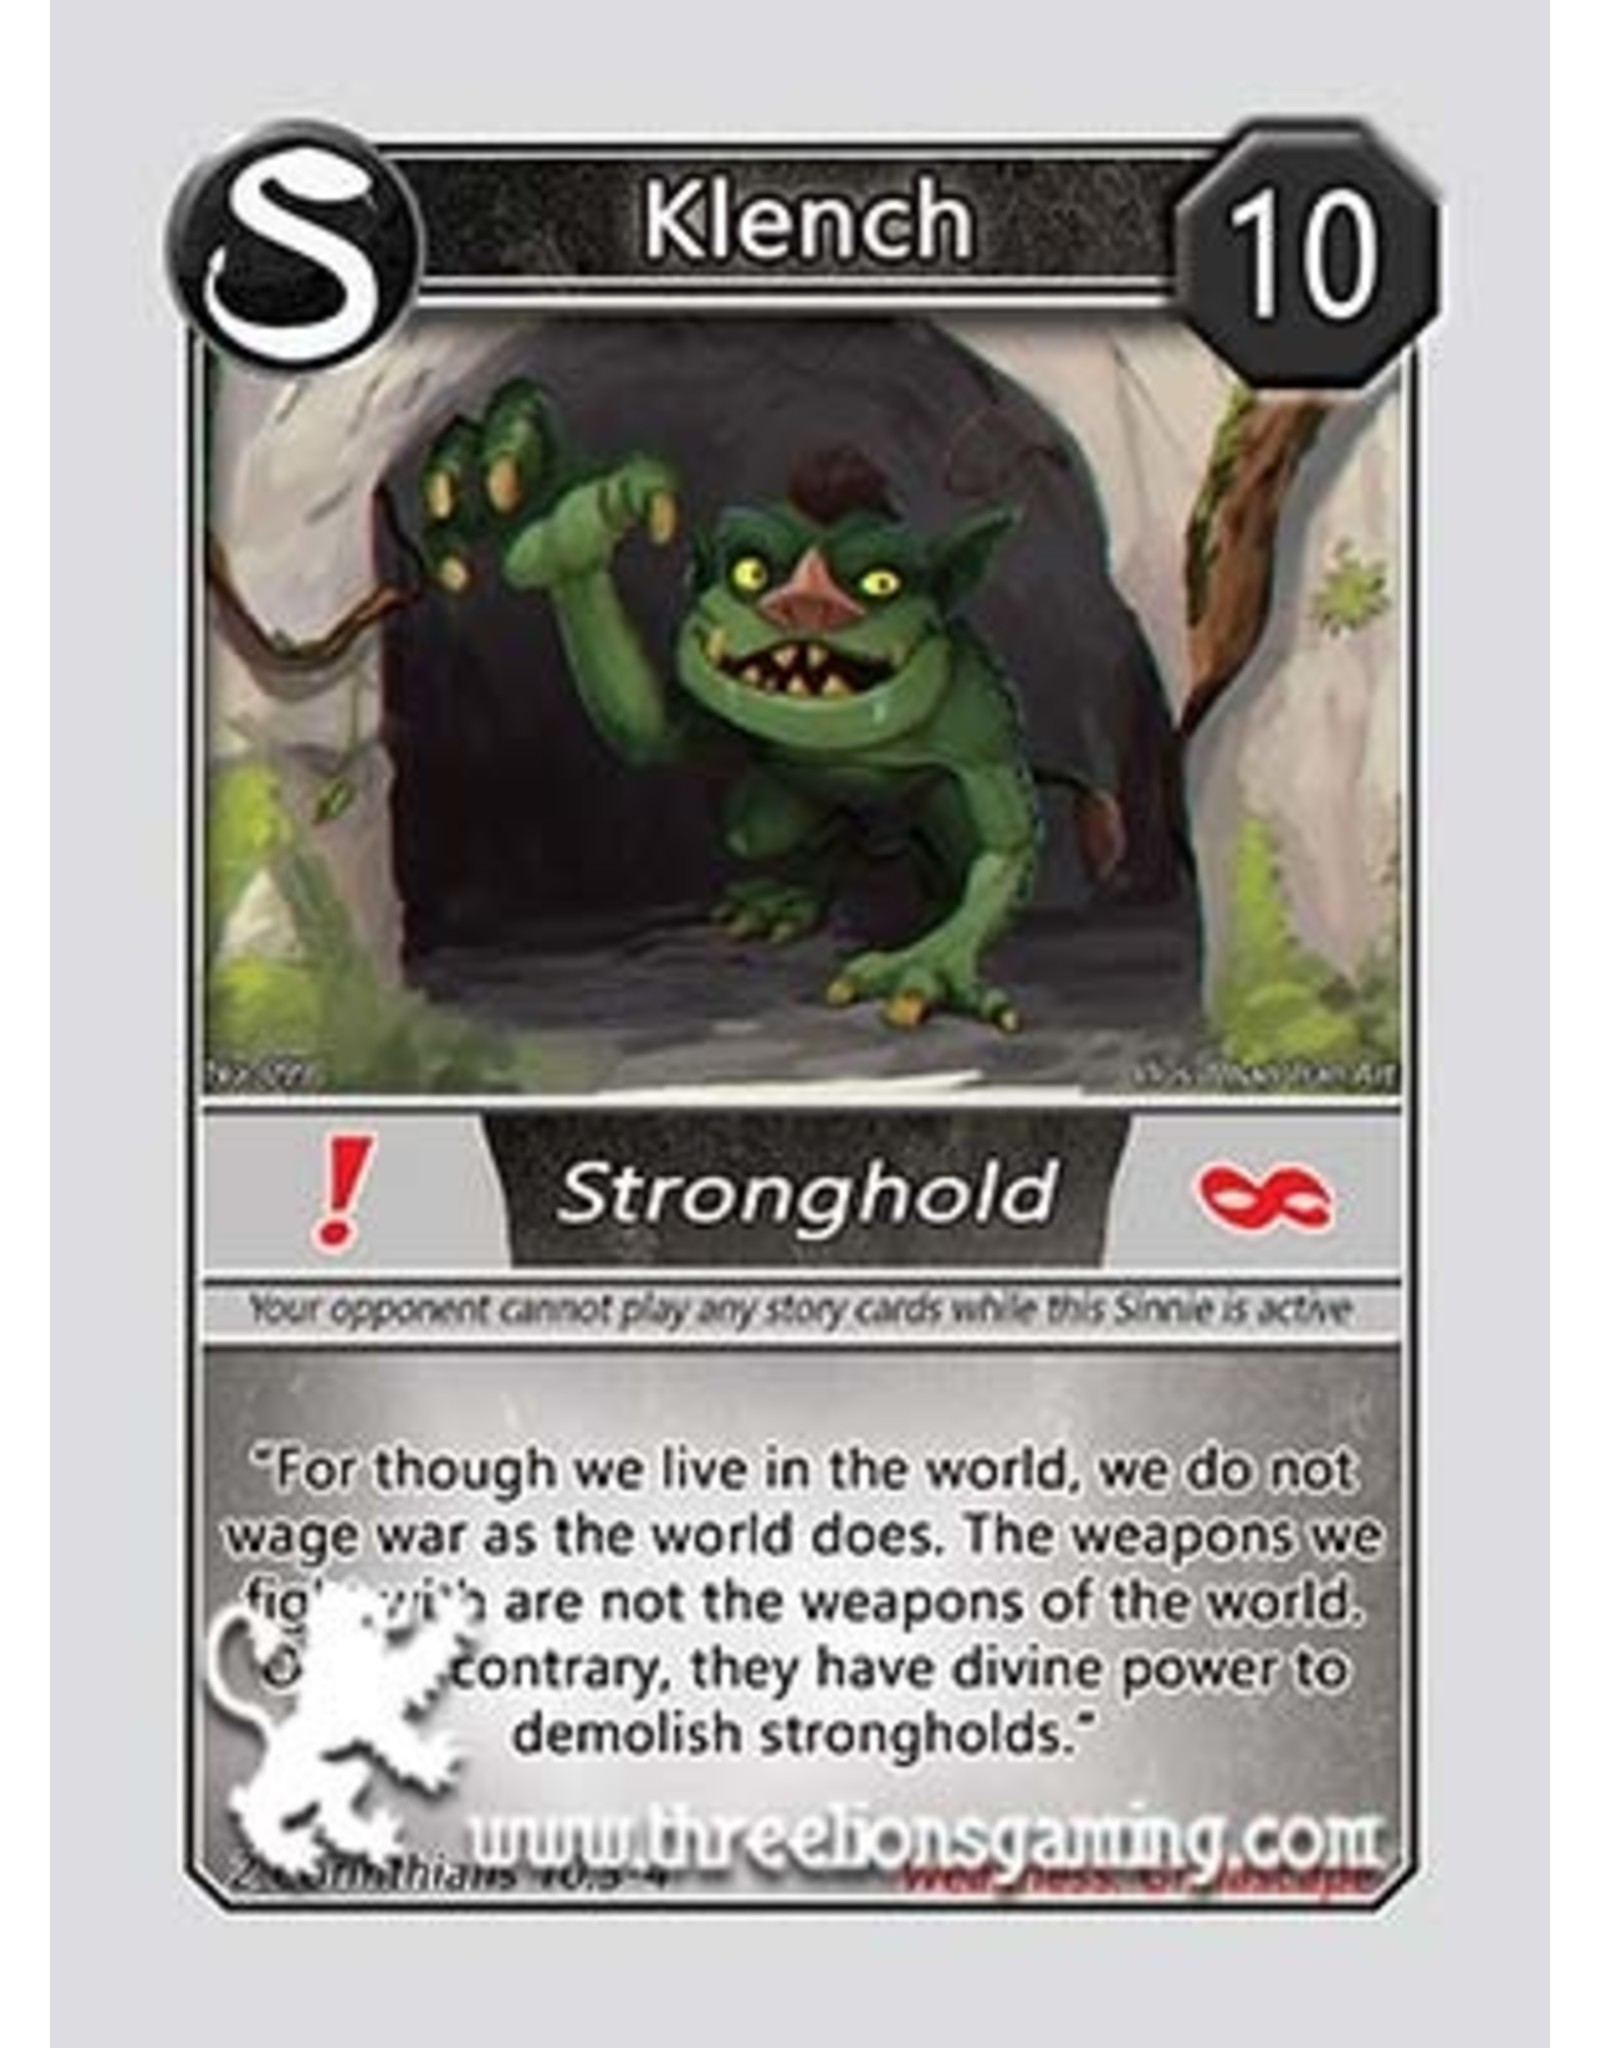 S1: Klench